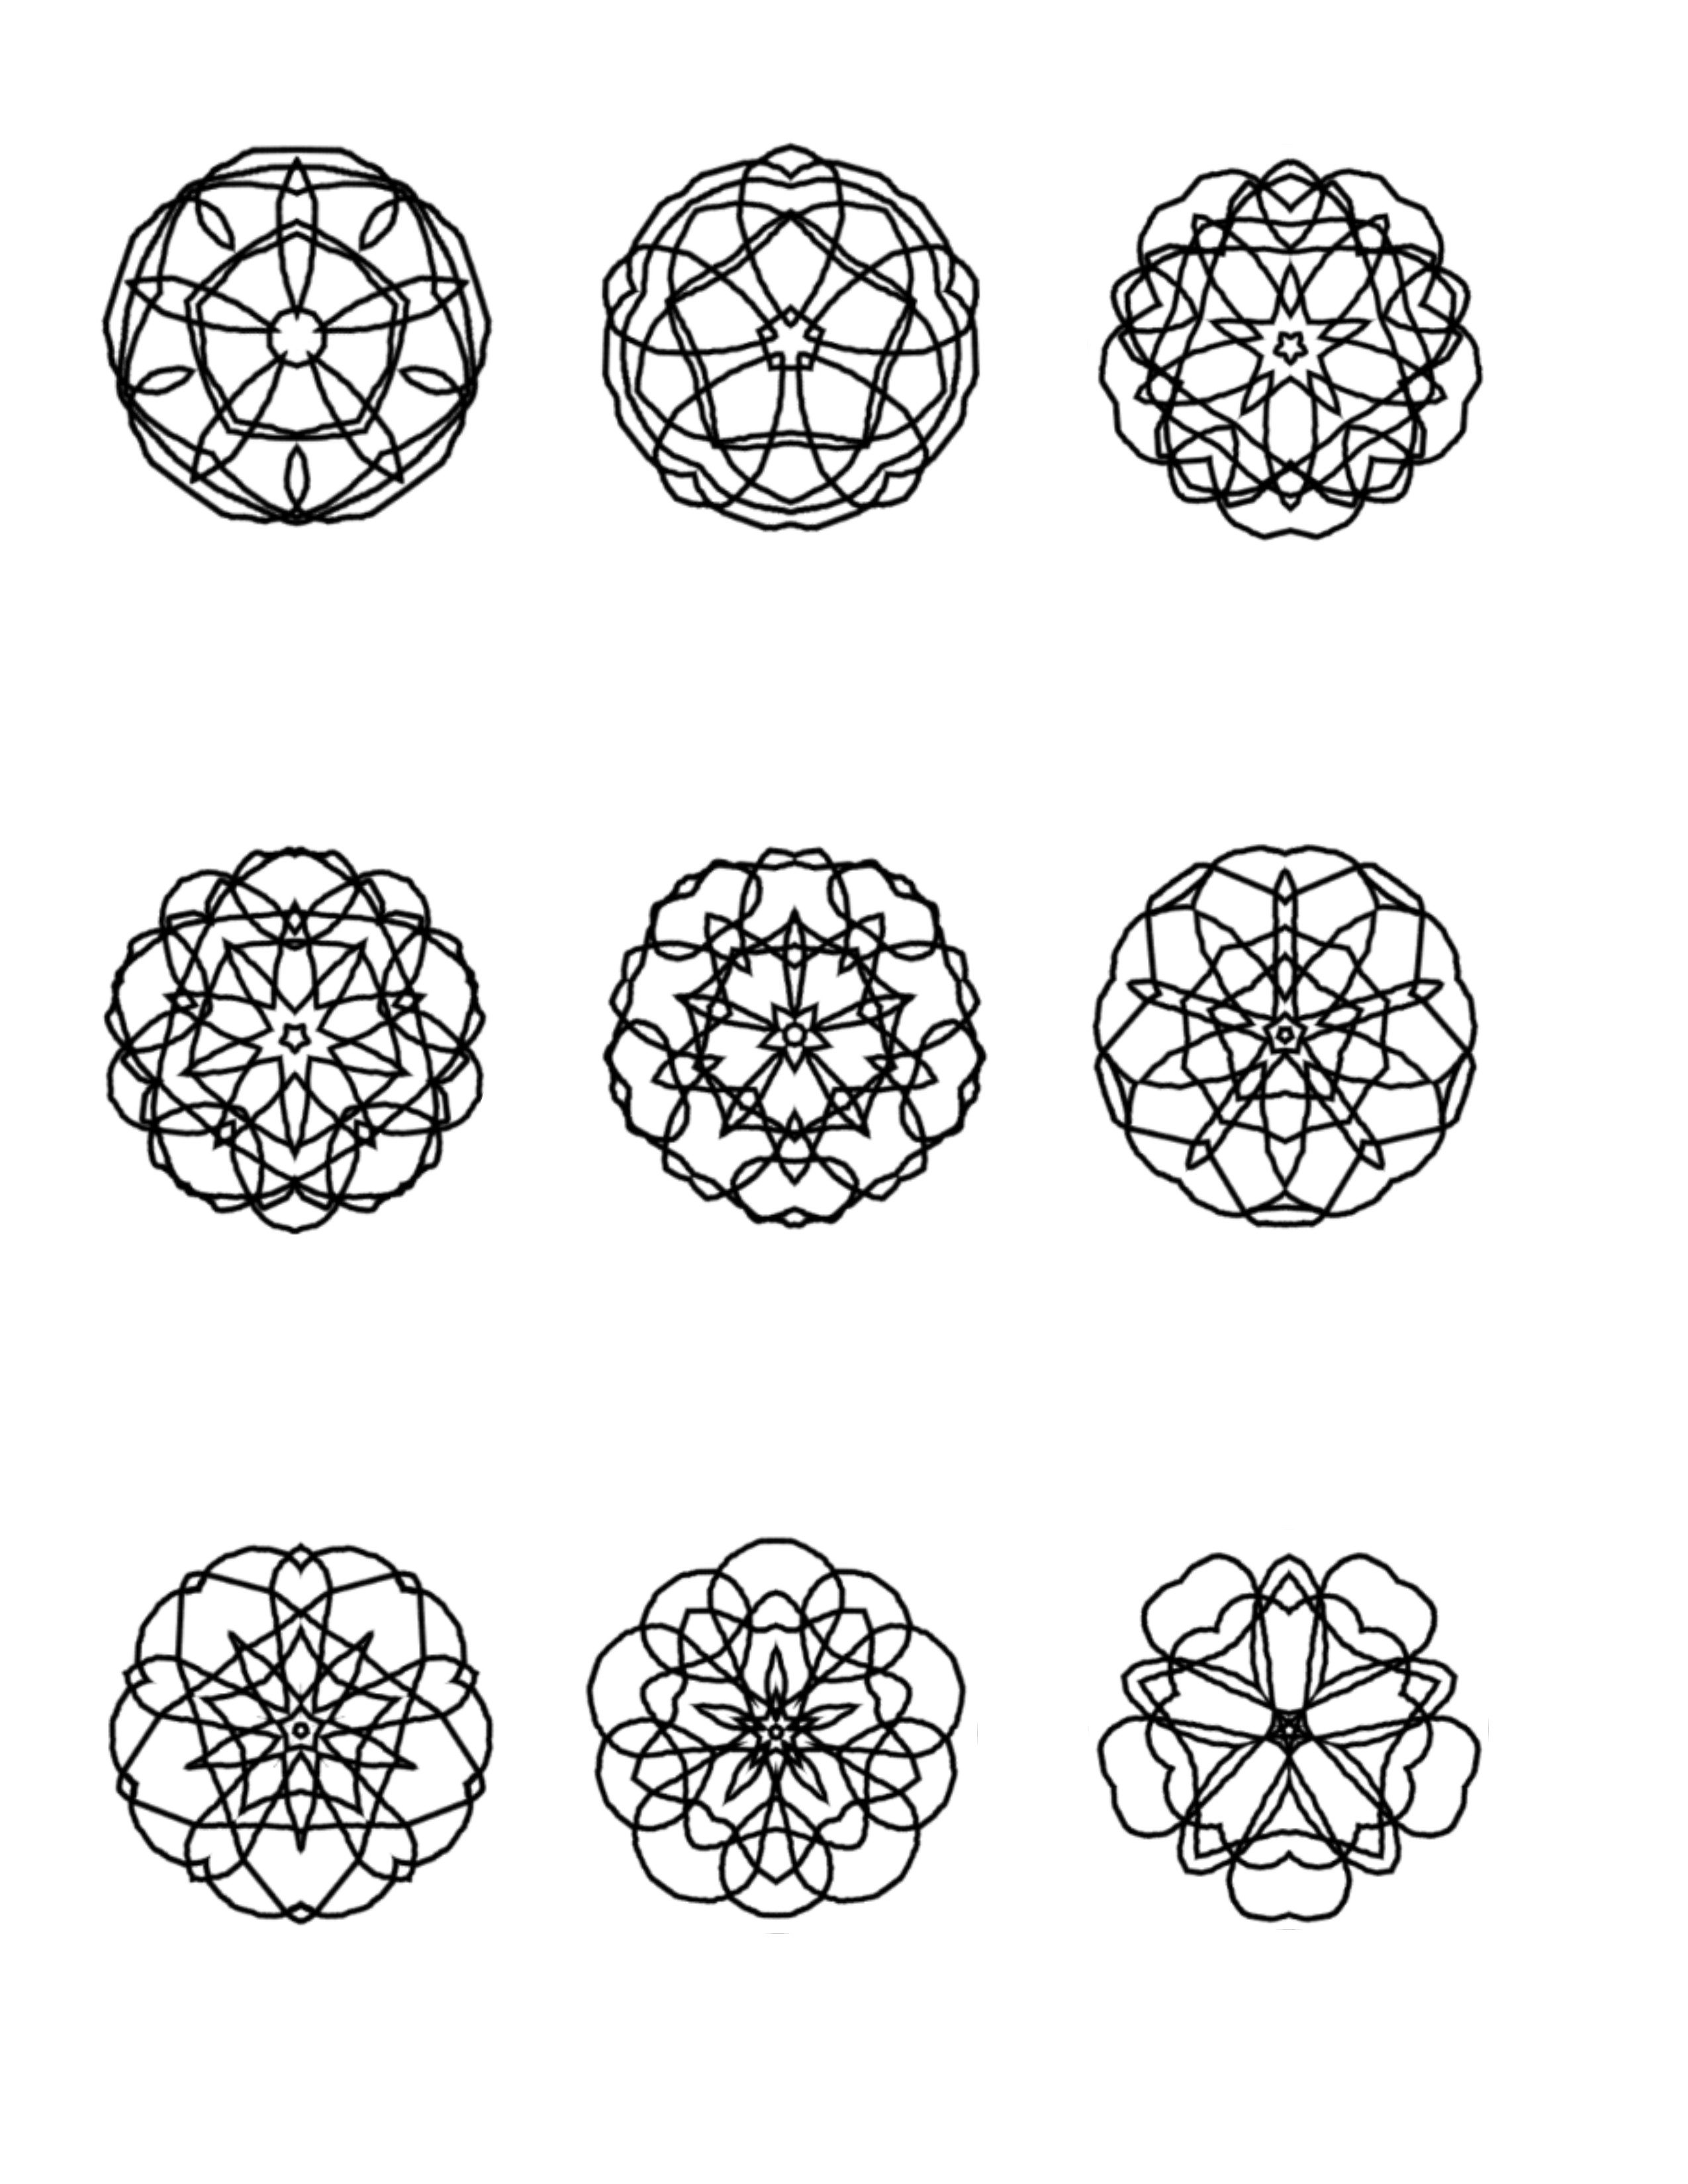 More Mini Mandalas To Color Ilahs Blog About